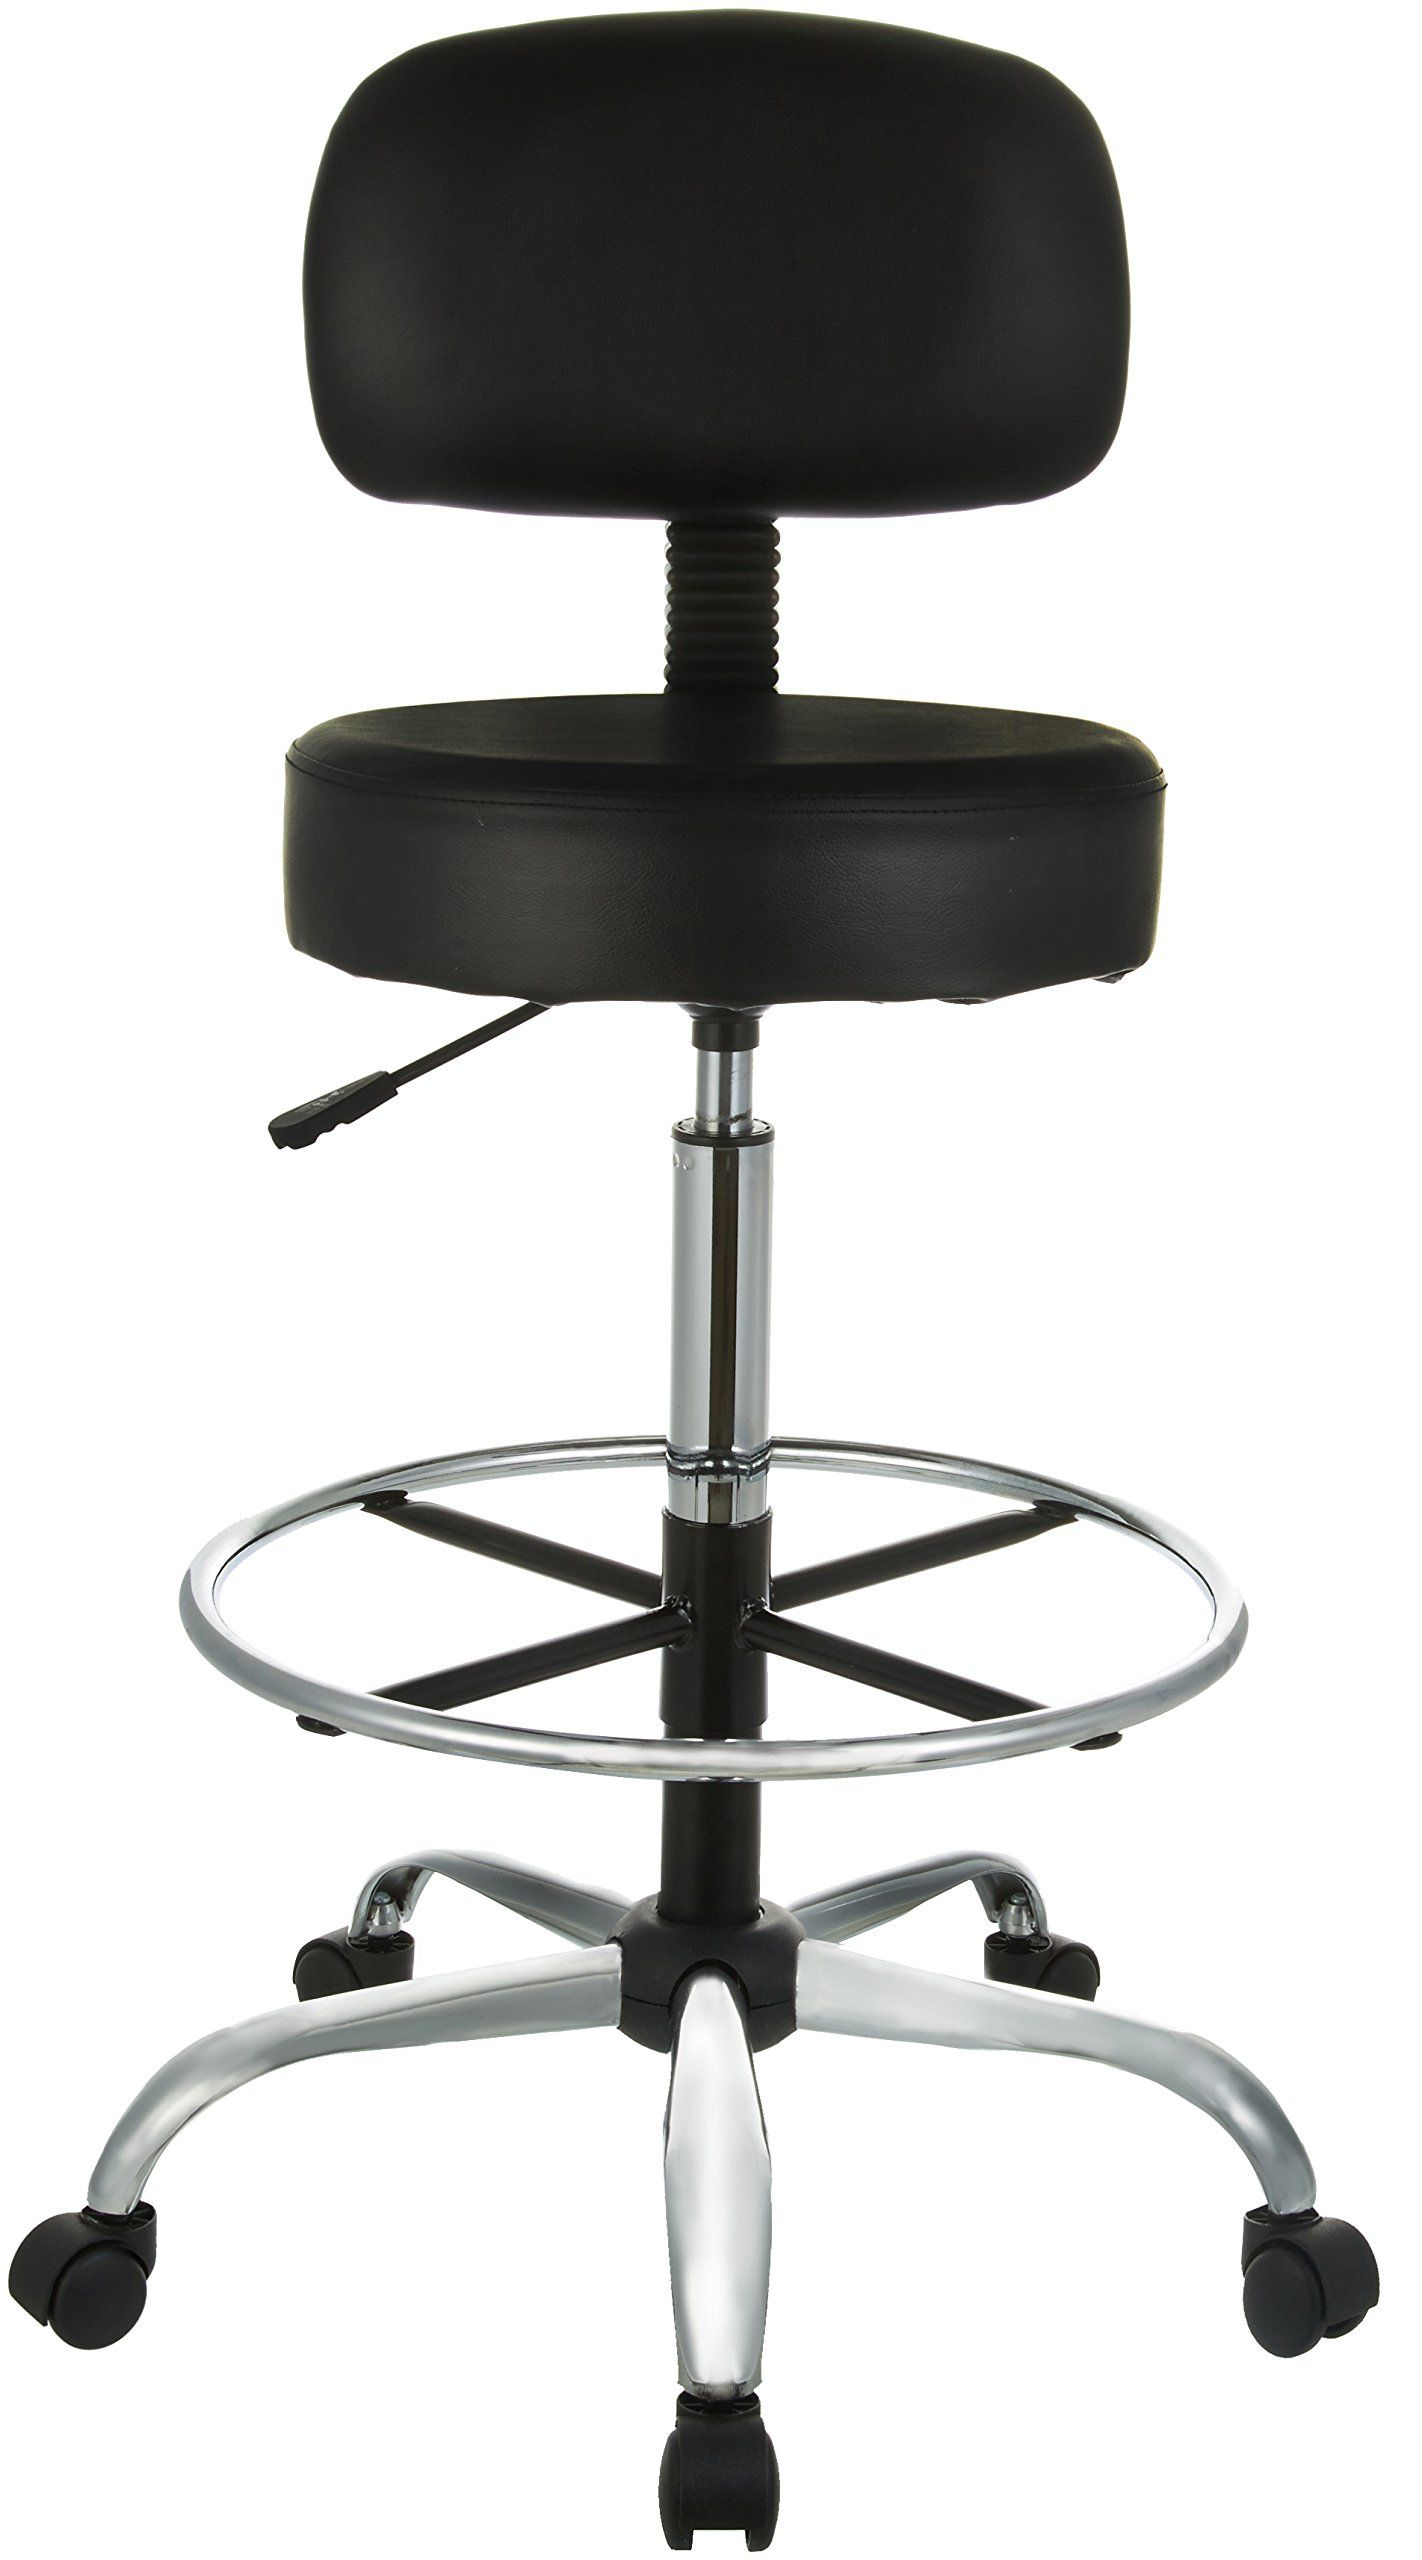 Amazonbasics Drafting Stool With Adjustable Foot Rest Black For More Information Visit Image Link It Is An Affili Kitchen Fixtures Foot Rest Office Chair